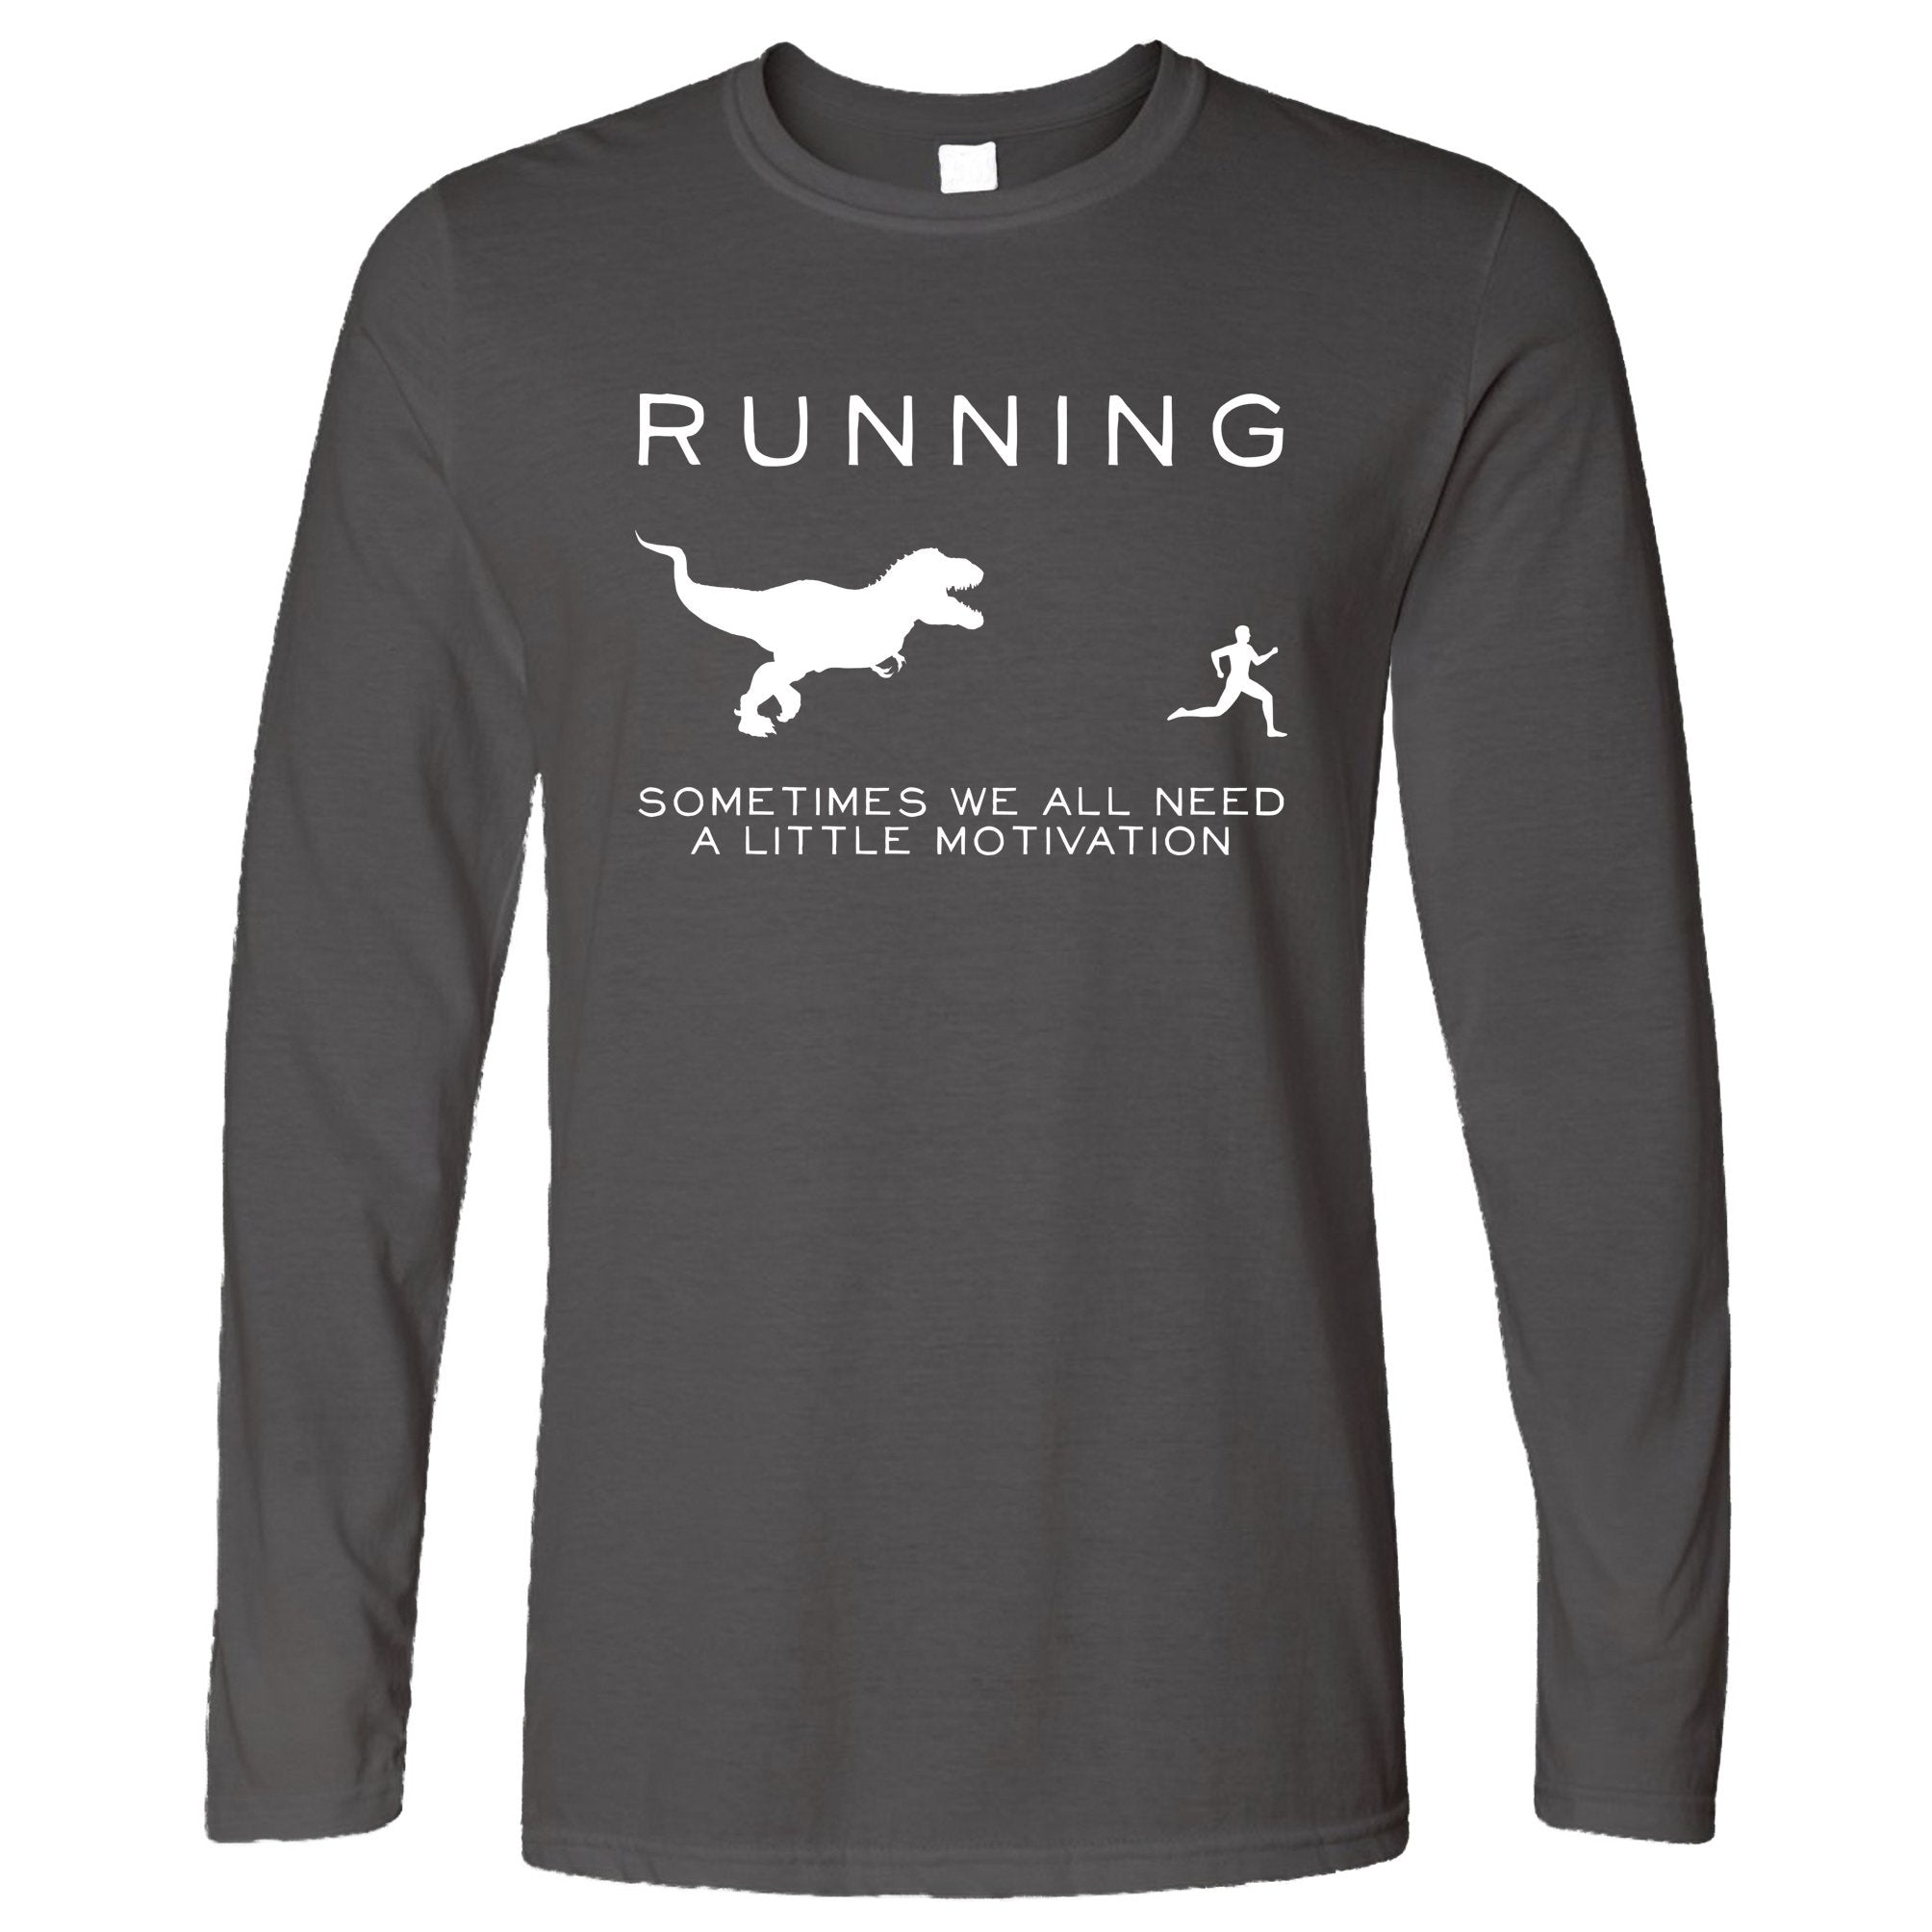 Running Long Sleeve Just Need Motivation T-Rex T-Shirt